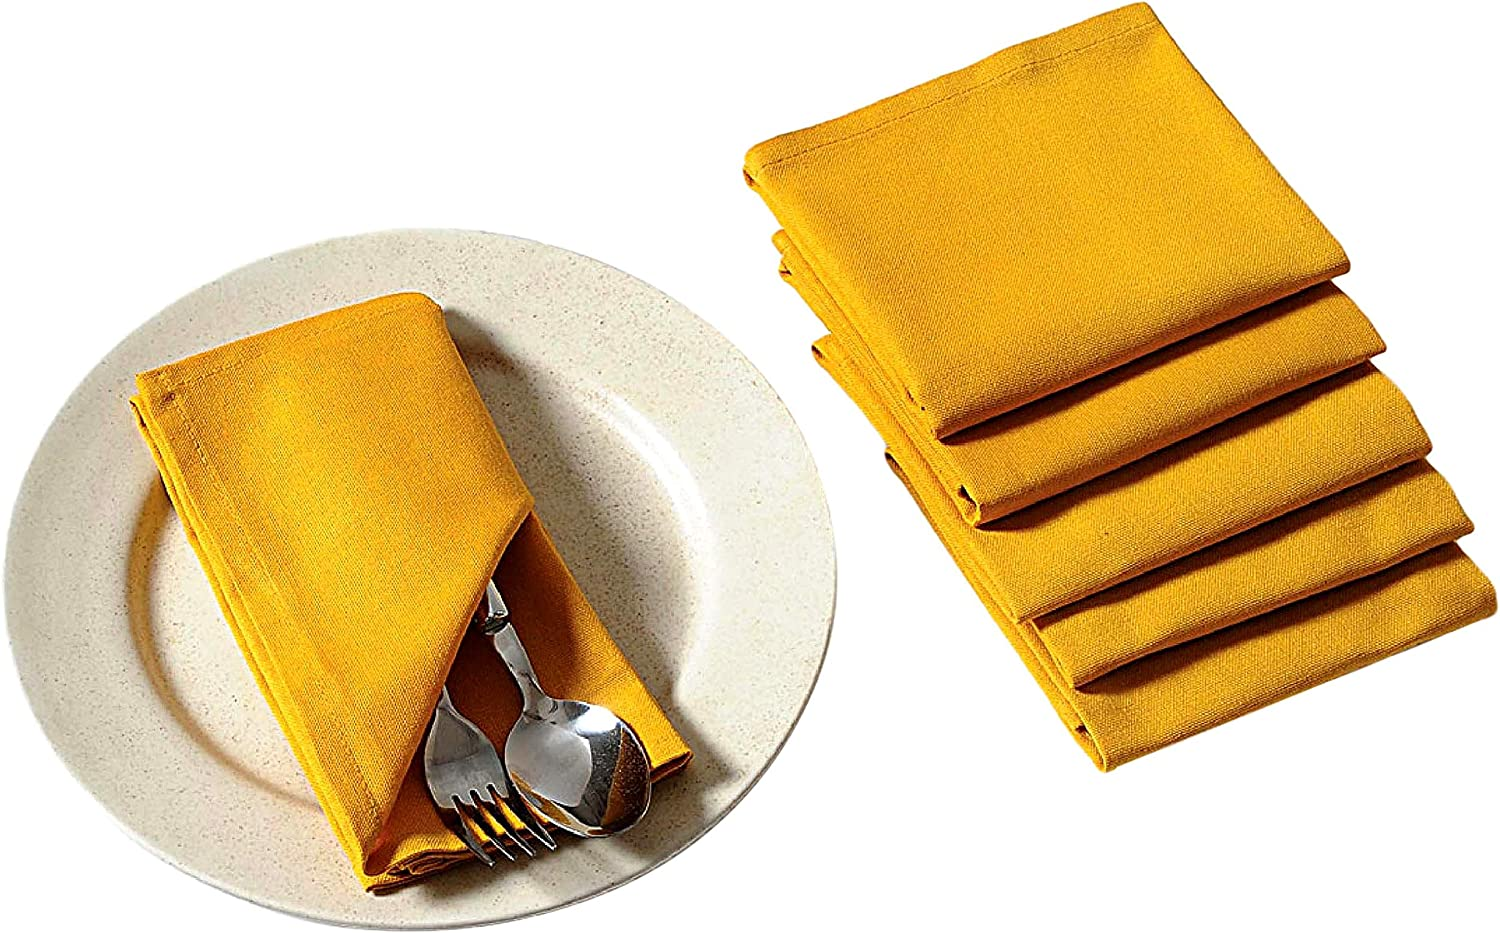 Napkins Indian Yellow Polka Dot Cotton with Mitered Corners Approximately 17 x 17  Sold as a Set of 4